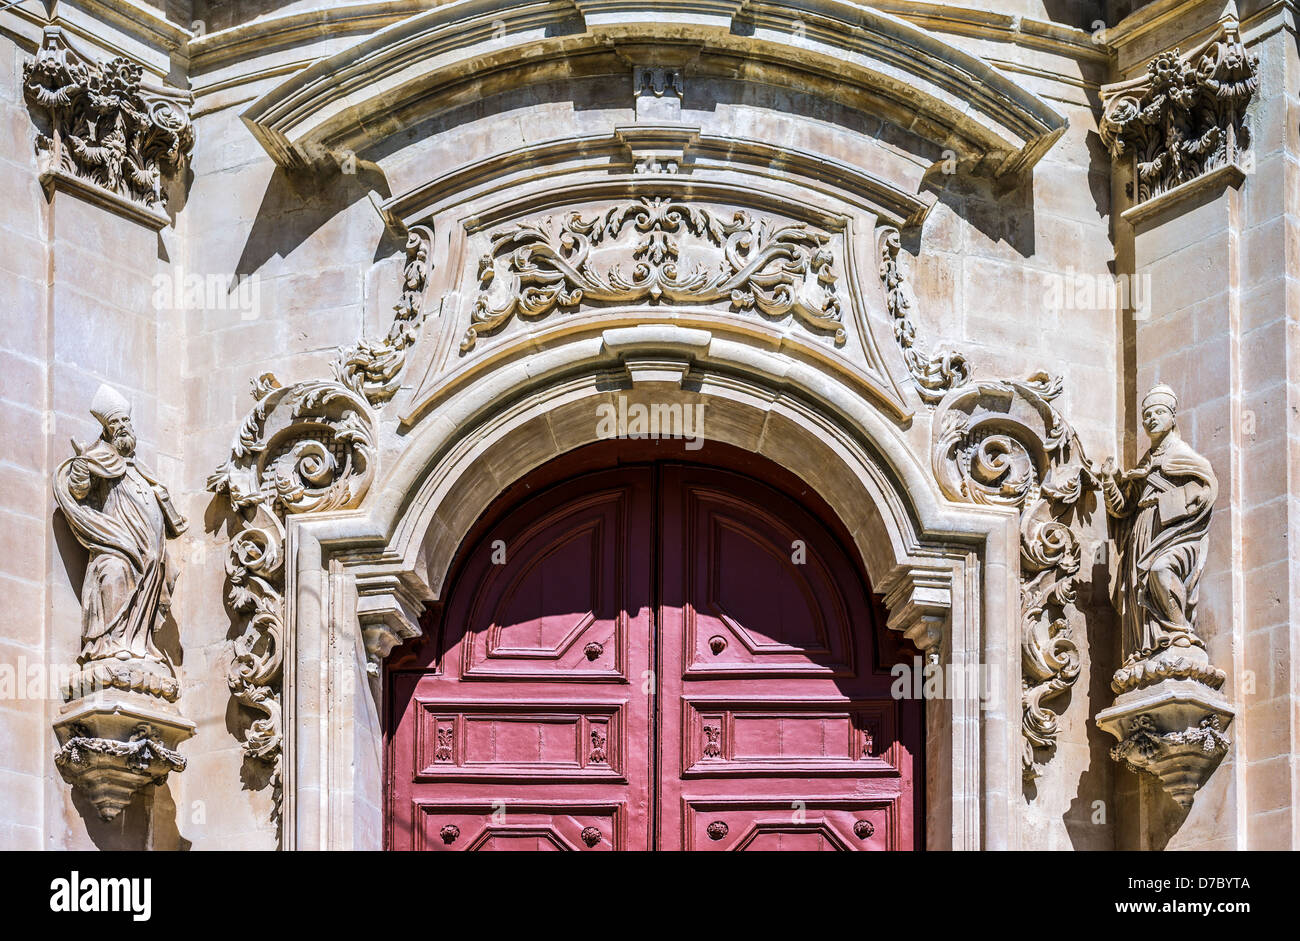 Europe Italy, Sicily,Ragusa,Ibla, the facade detail of the San Giuseppe church - Stock Image